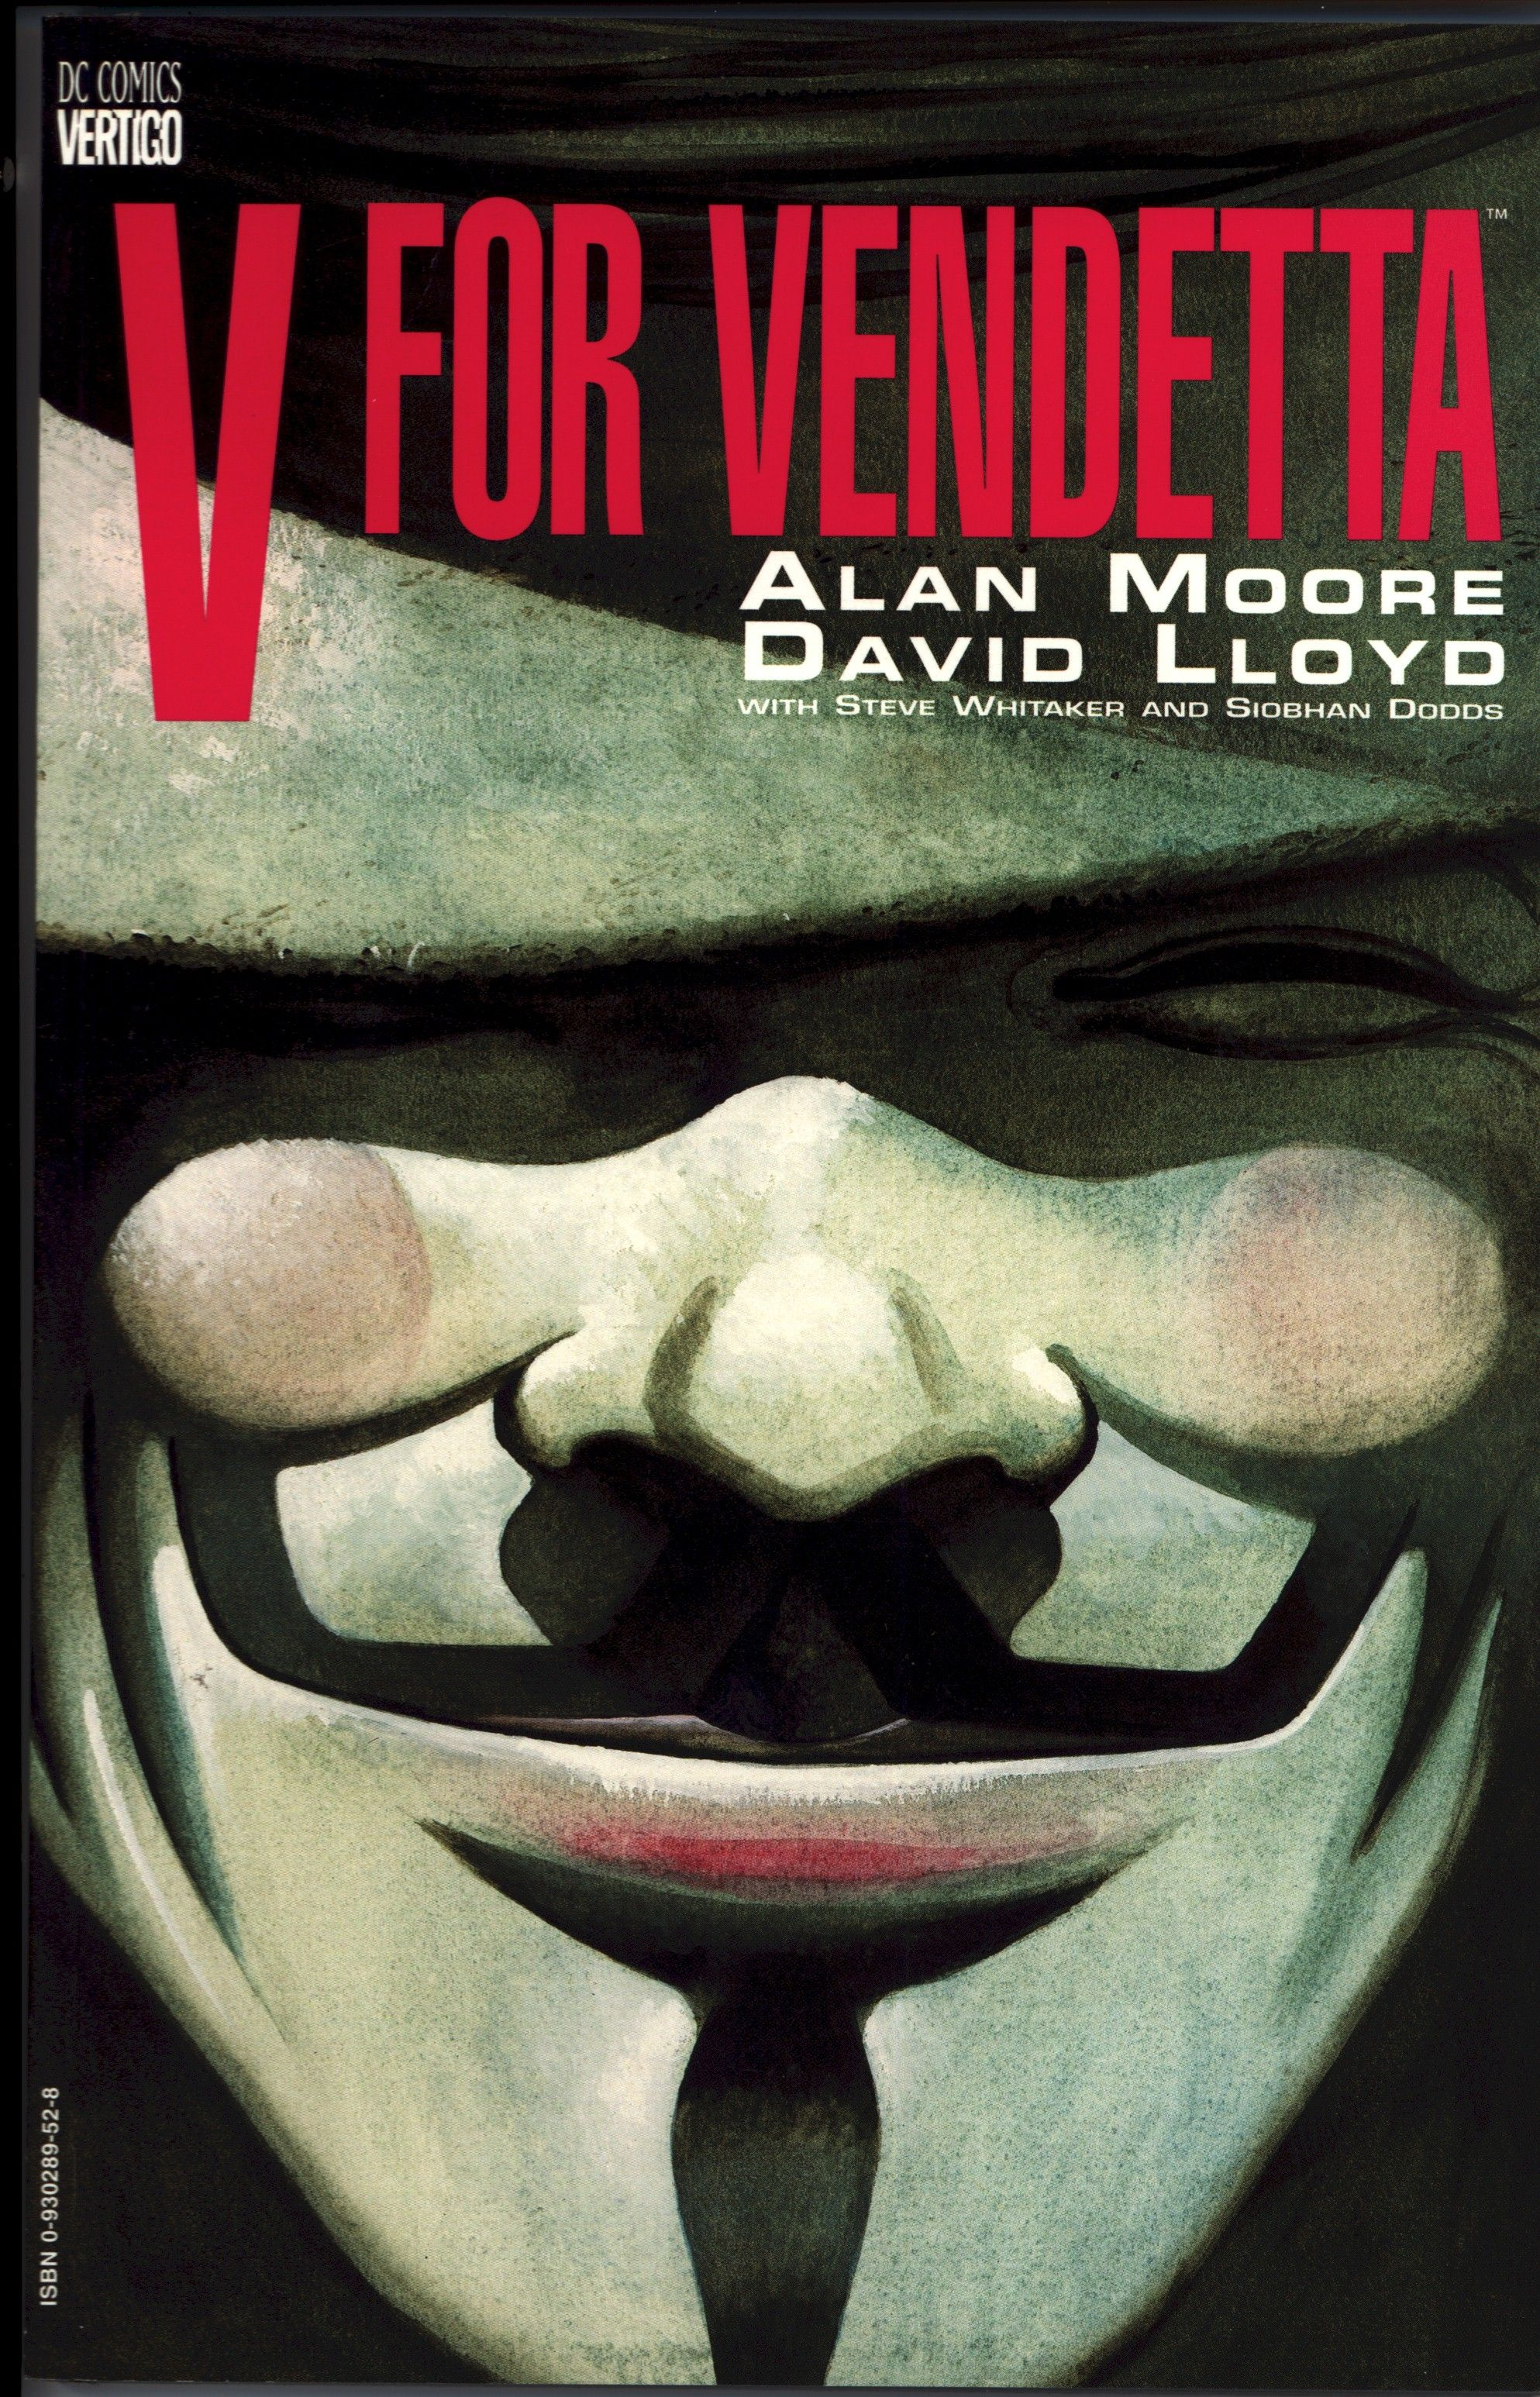 Pin By Joshua Parsons On Comic V For Vendetta Book V For Vendetta Comic V For Vendetta